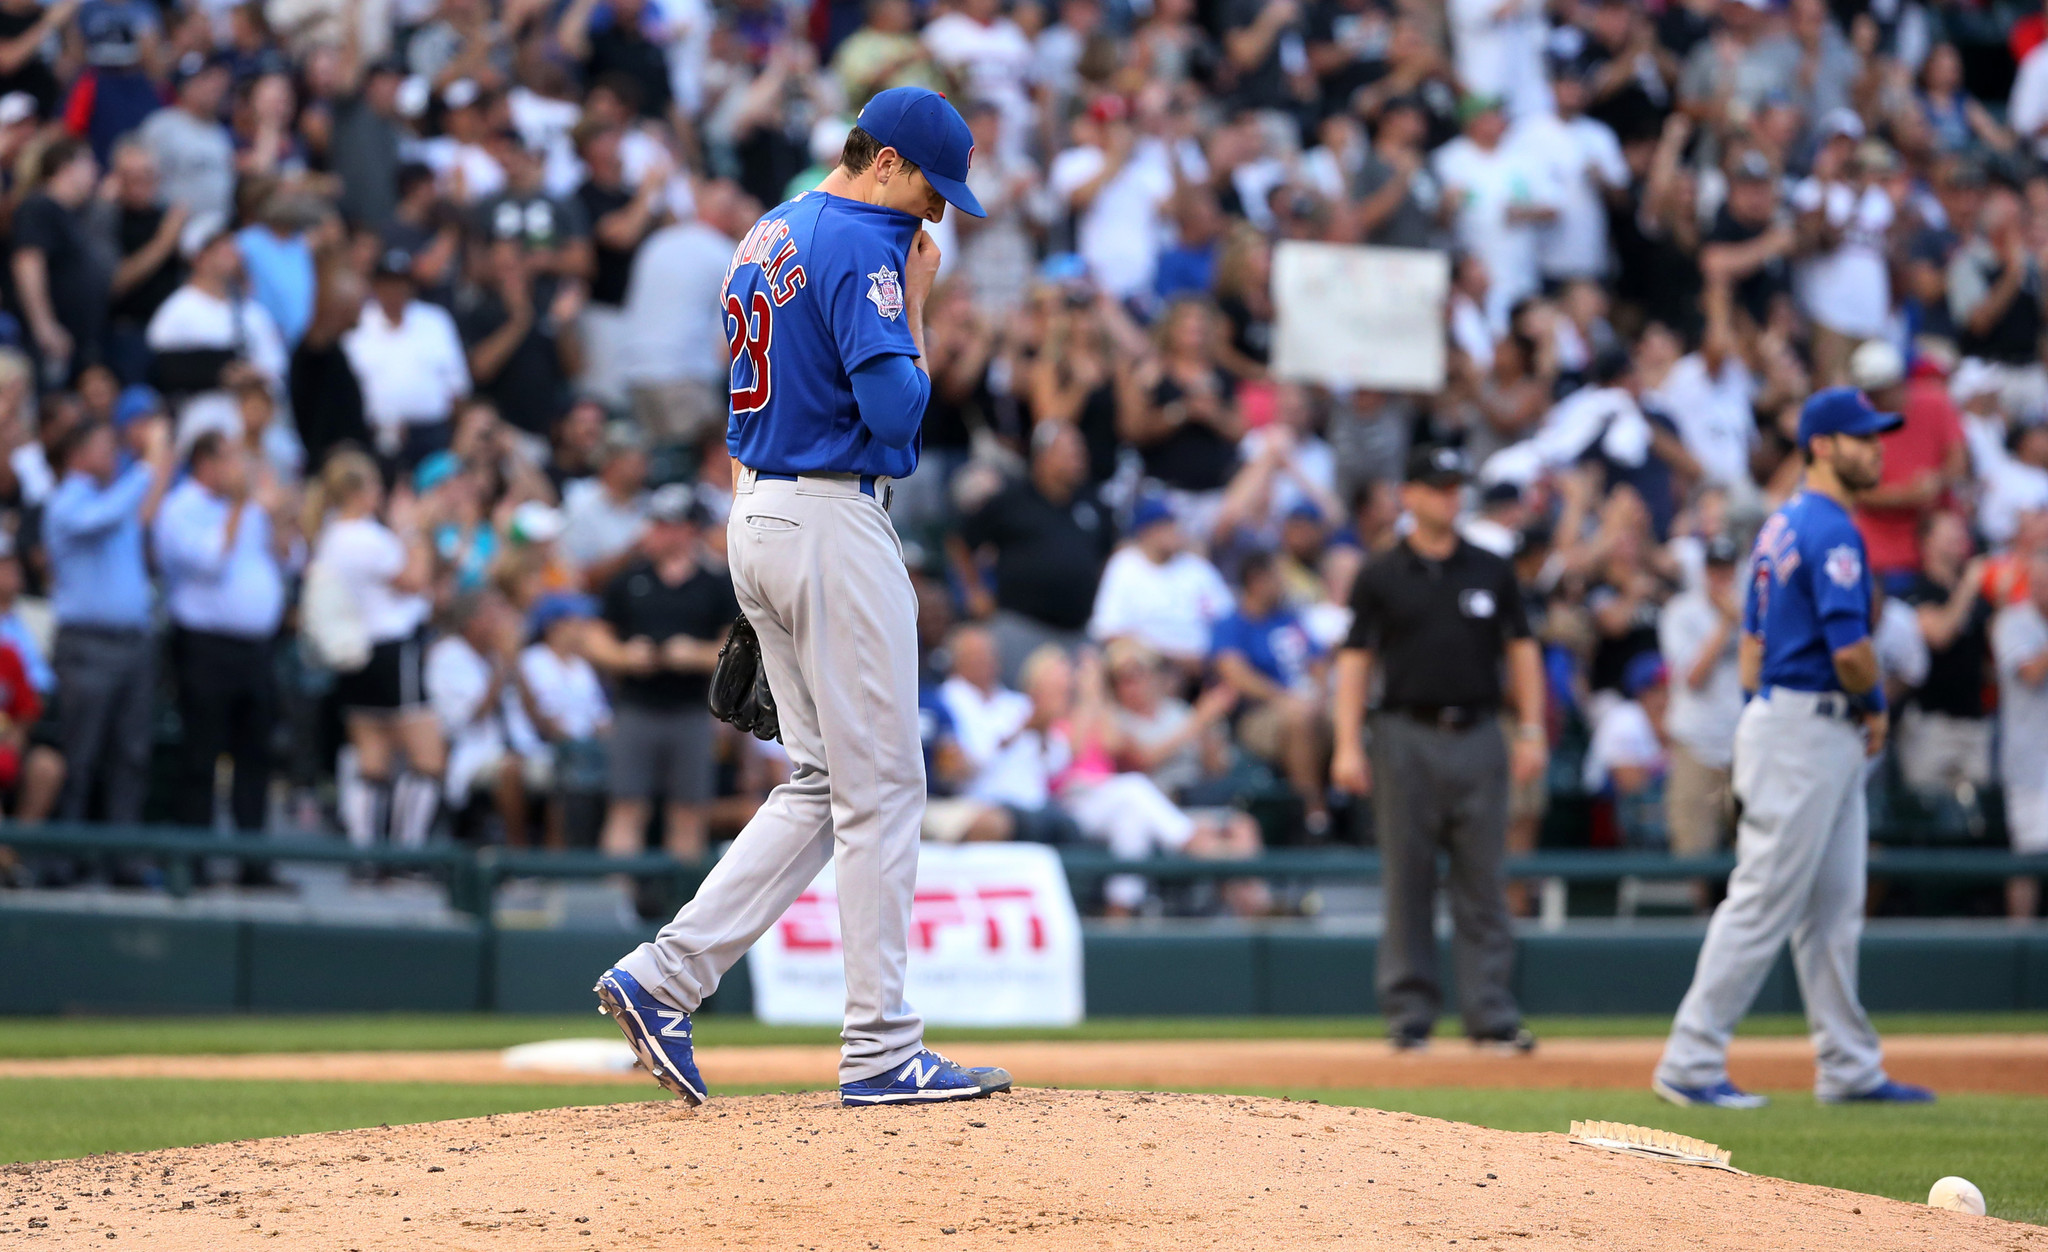 Ct-walks-haunt-cubs-in-3-0-loss-20160726